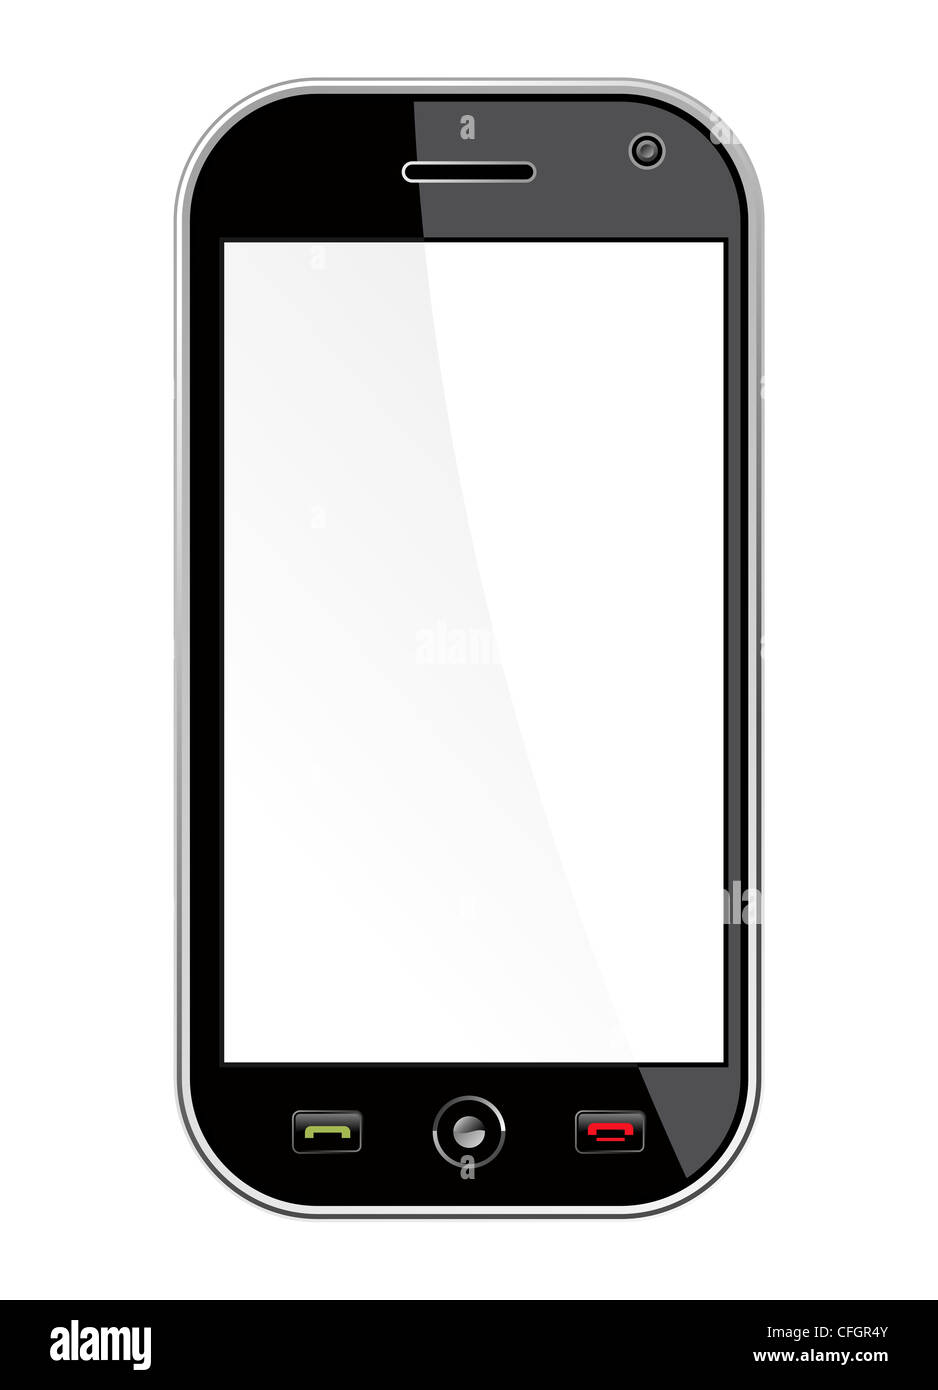 Generic black smartphone isolated over white with blank space for your own design or image. Useful for mobile applications - Stock Image